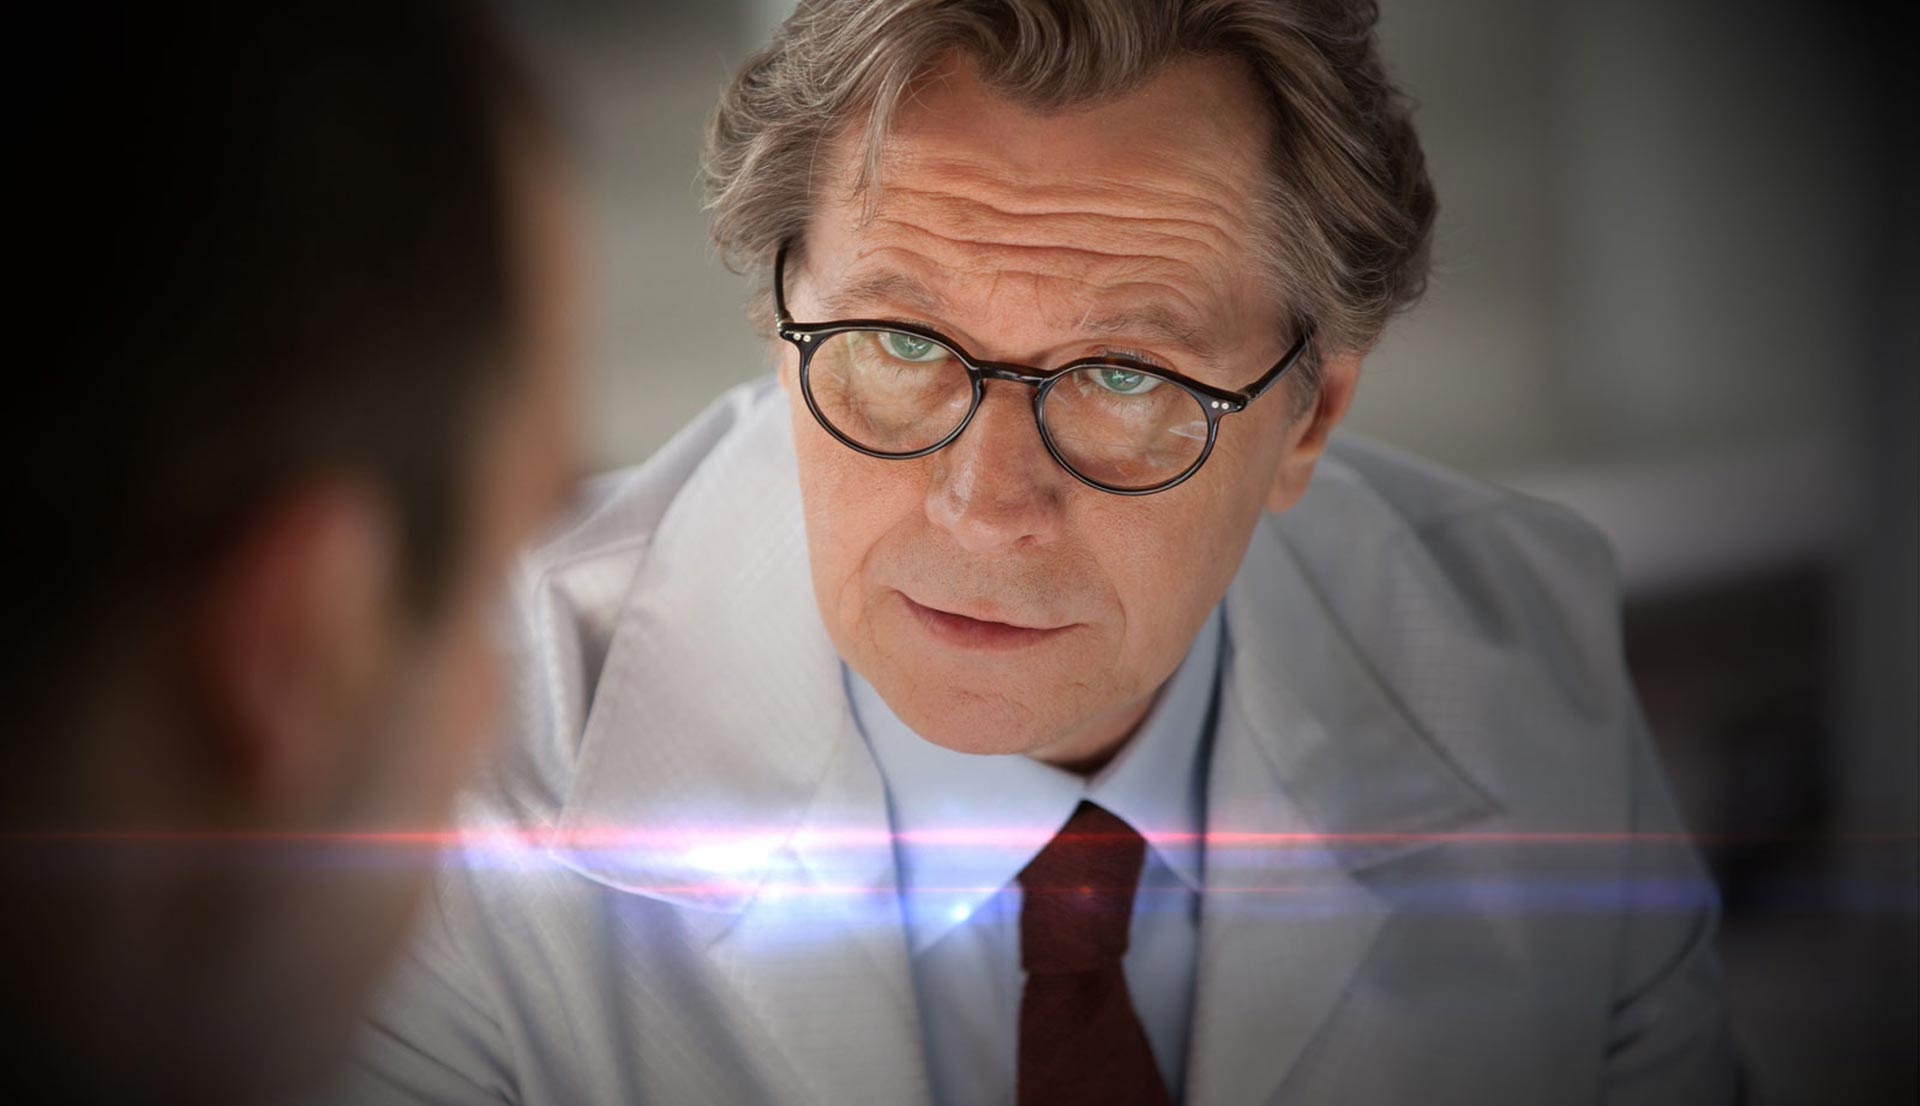 gary oldman robocop Interview: Gary Oldman Talks RoboCop and Google Research